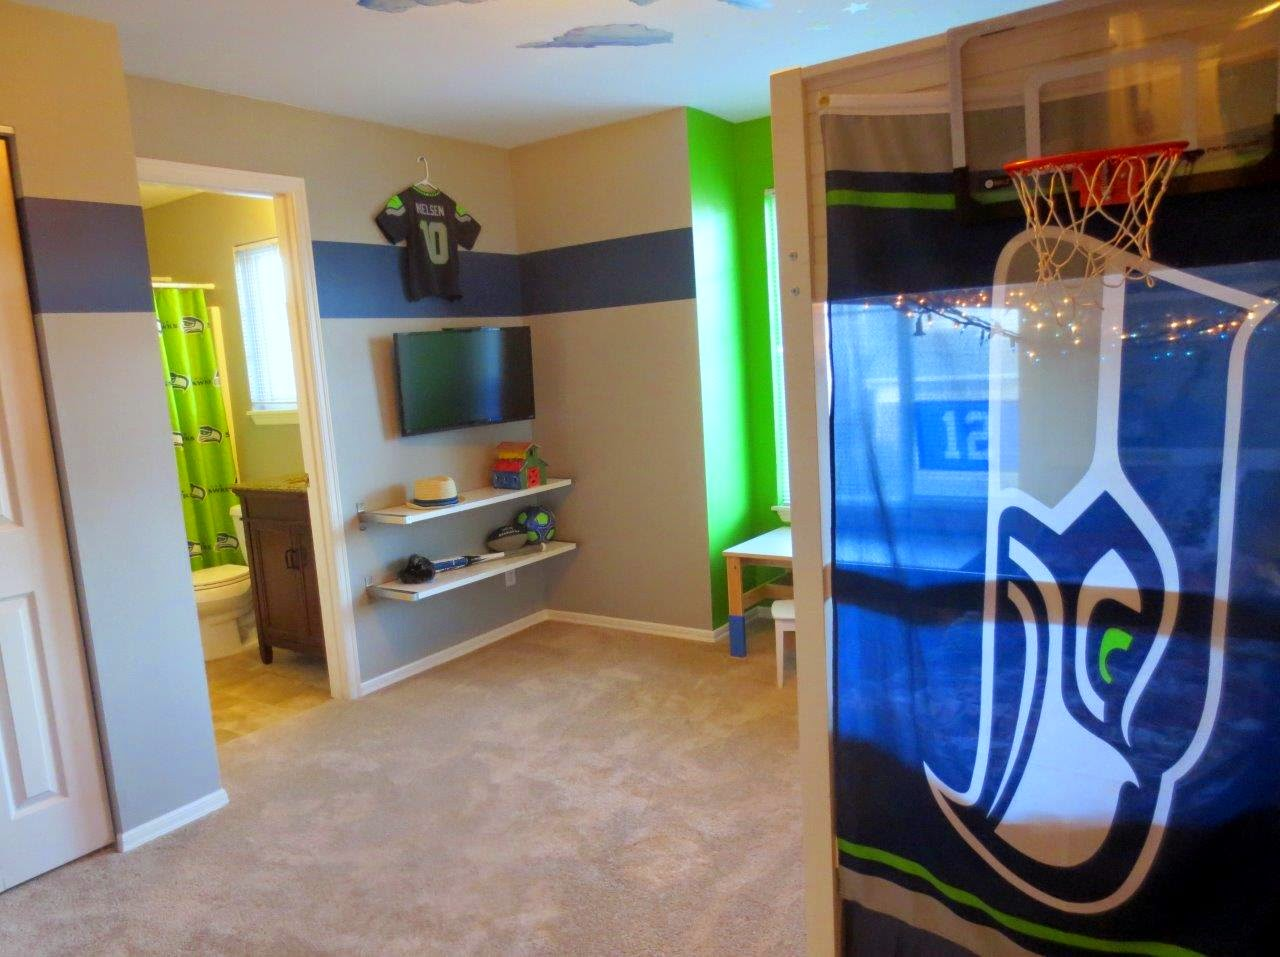 The Blue Stripe Around Room And Limiting Green To Small Nook Shower Curtain Make All Seahawks Color Present No Matter Where You